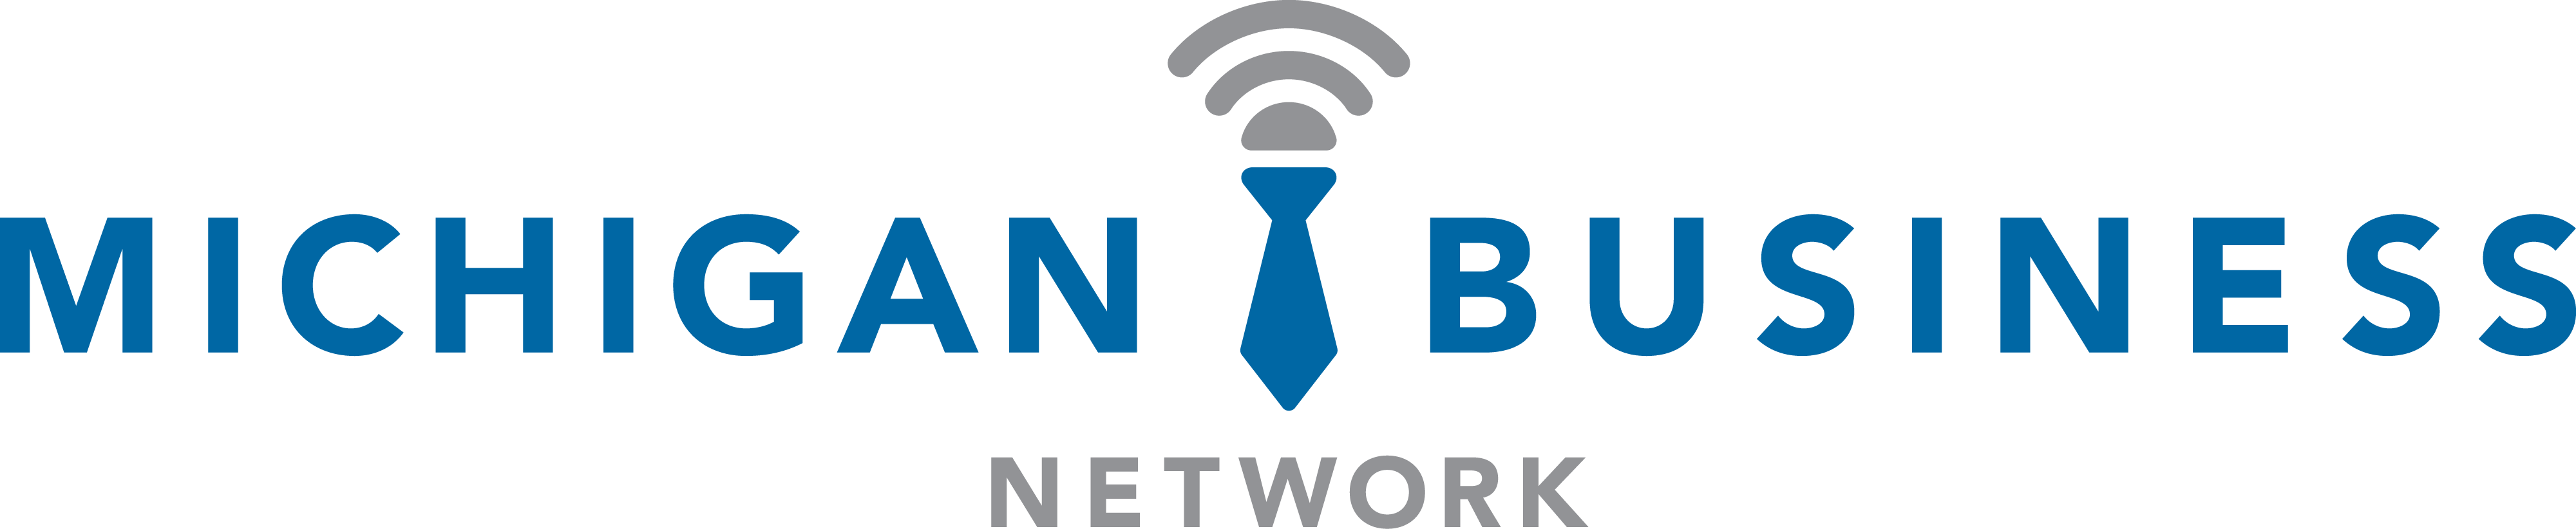 Michigan Business Network